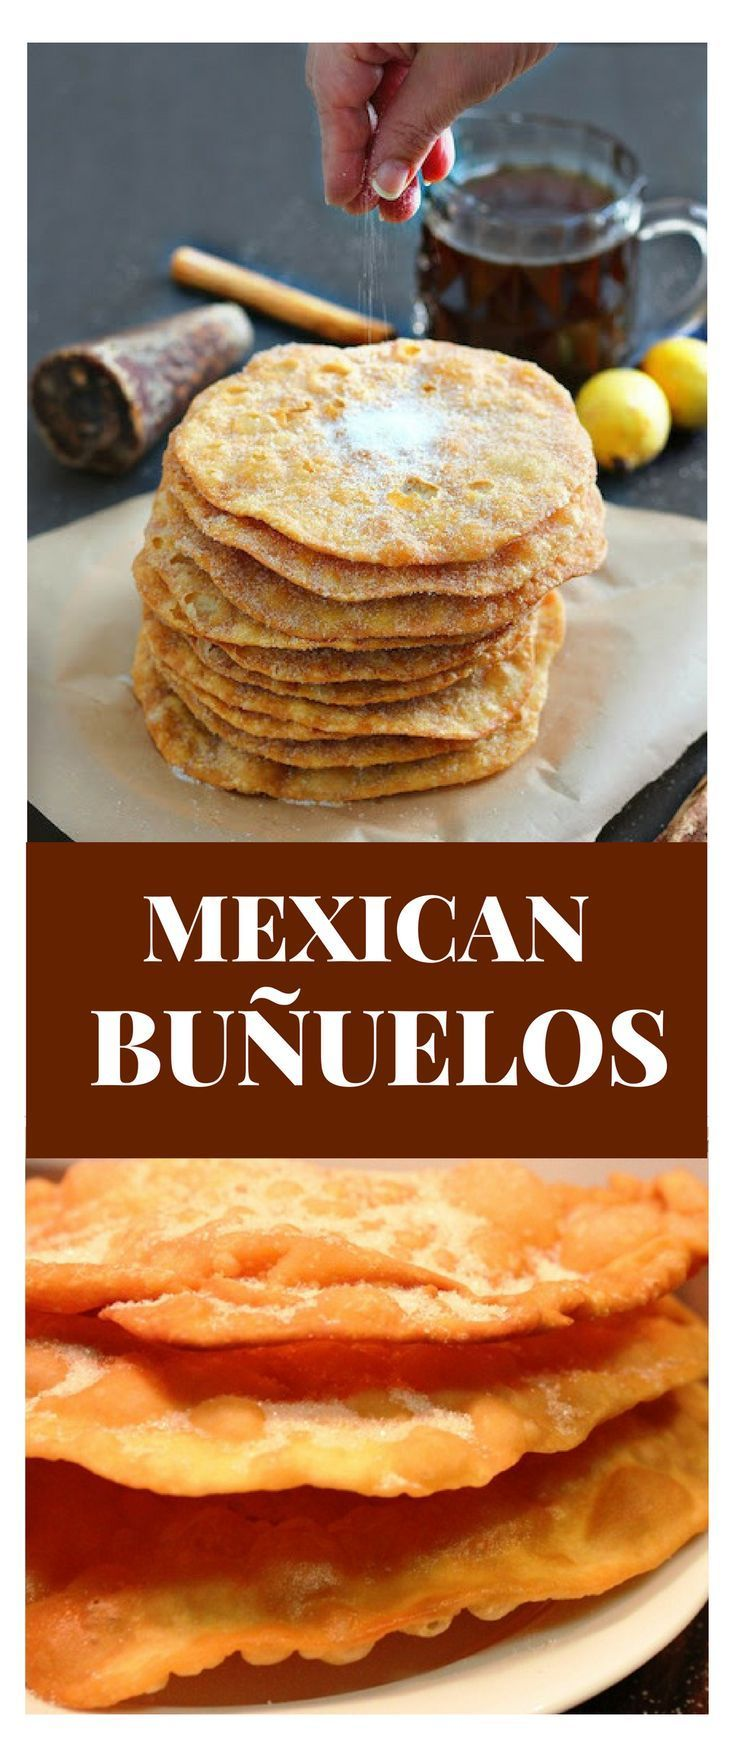 The 203 best mexican christmas food recipe images on pinterest these light crispy and sweet round disc are sprinkled with sugar or bathed in piloncillo syrup find this pin and more on mexican christmas food recipe forumfinder Choice Image